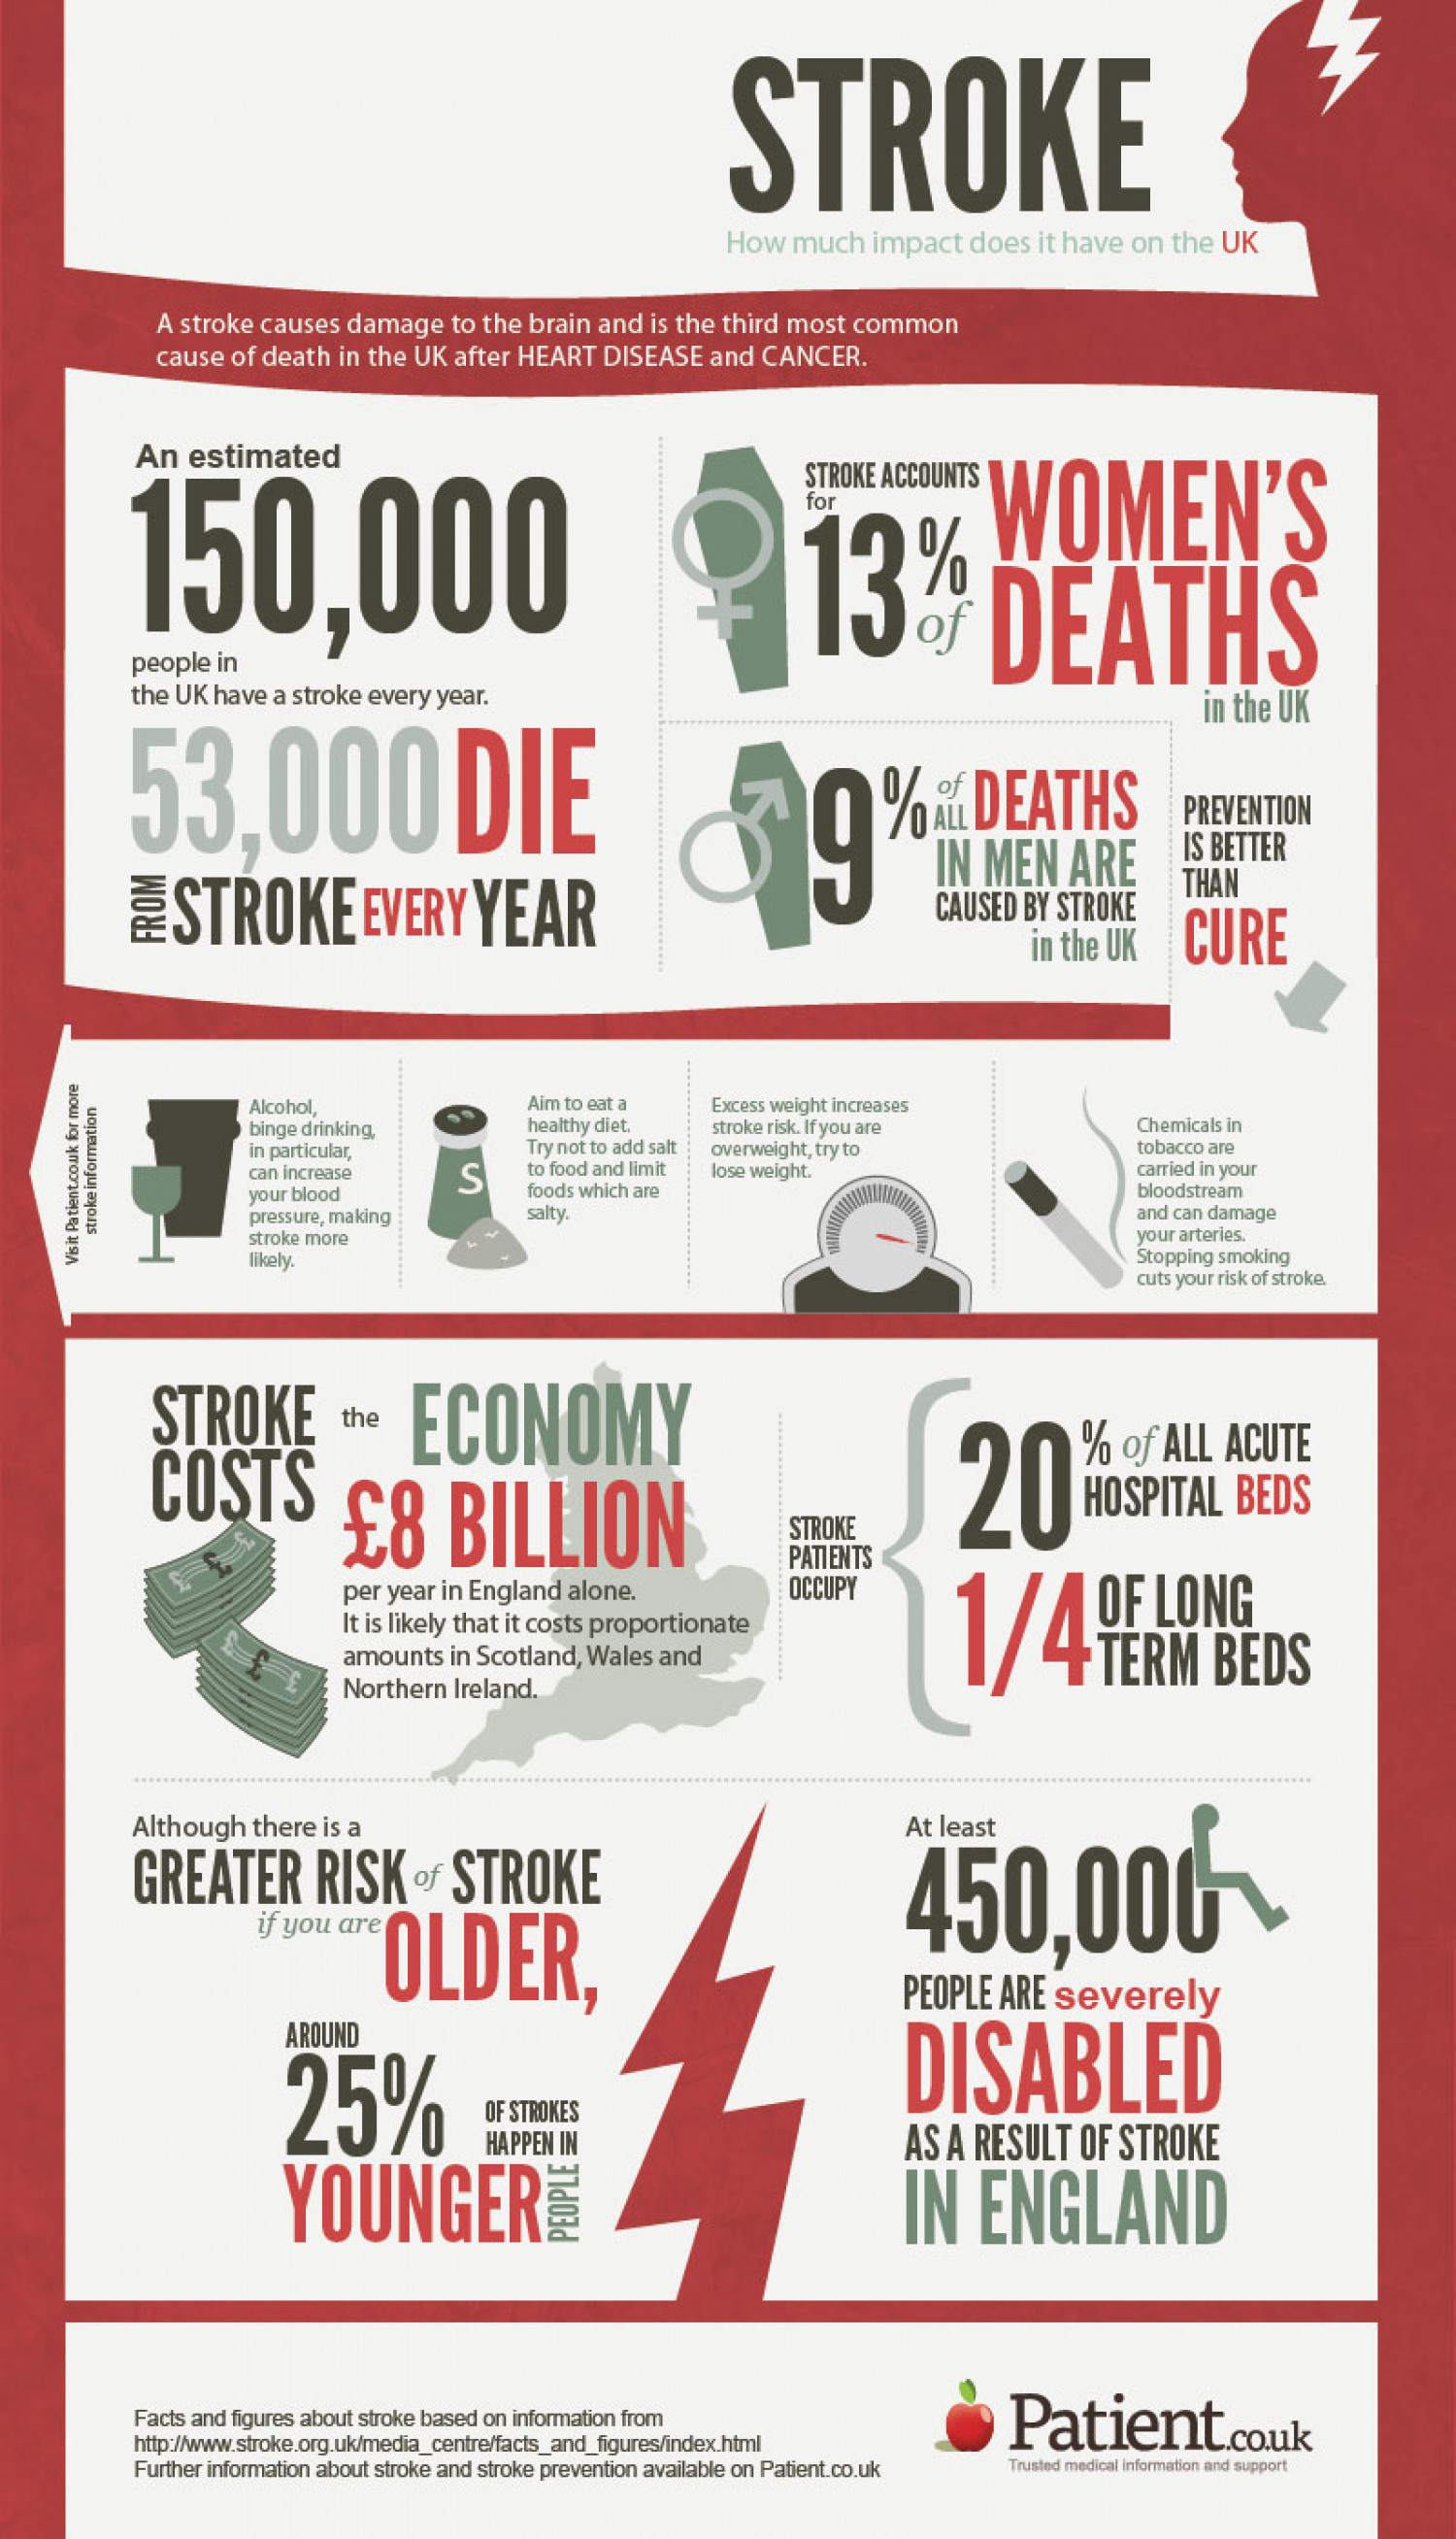 Stroke - How much impact does it have on the UK Infographic